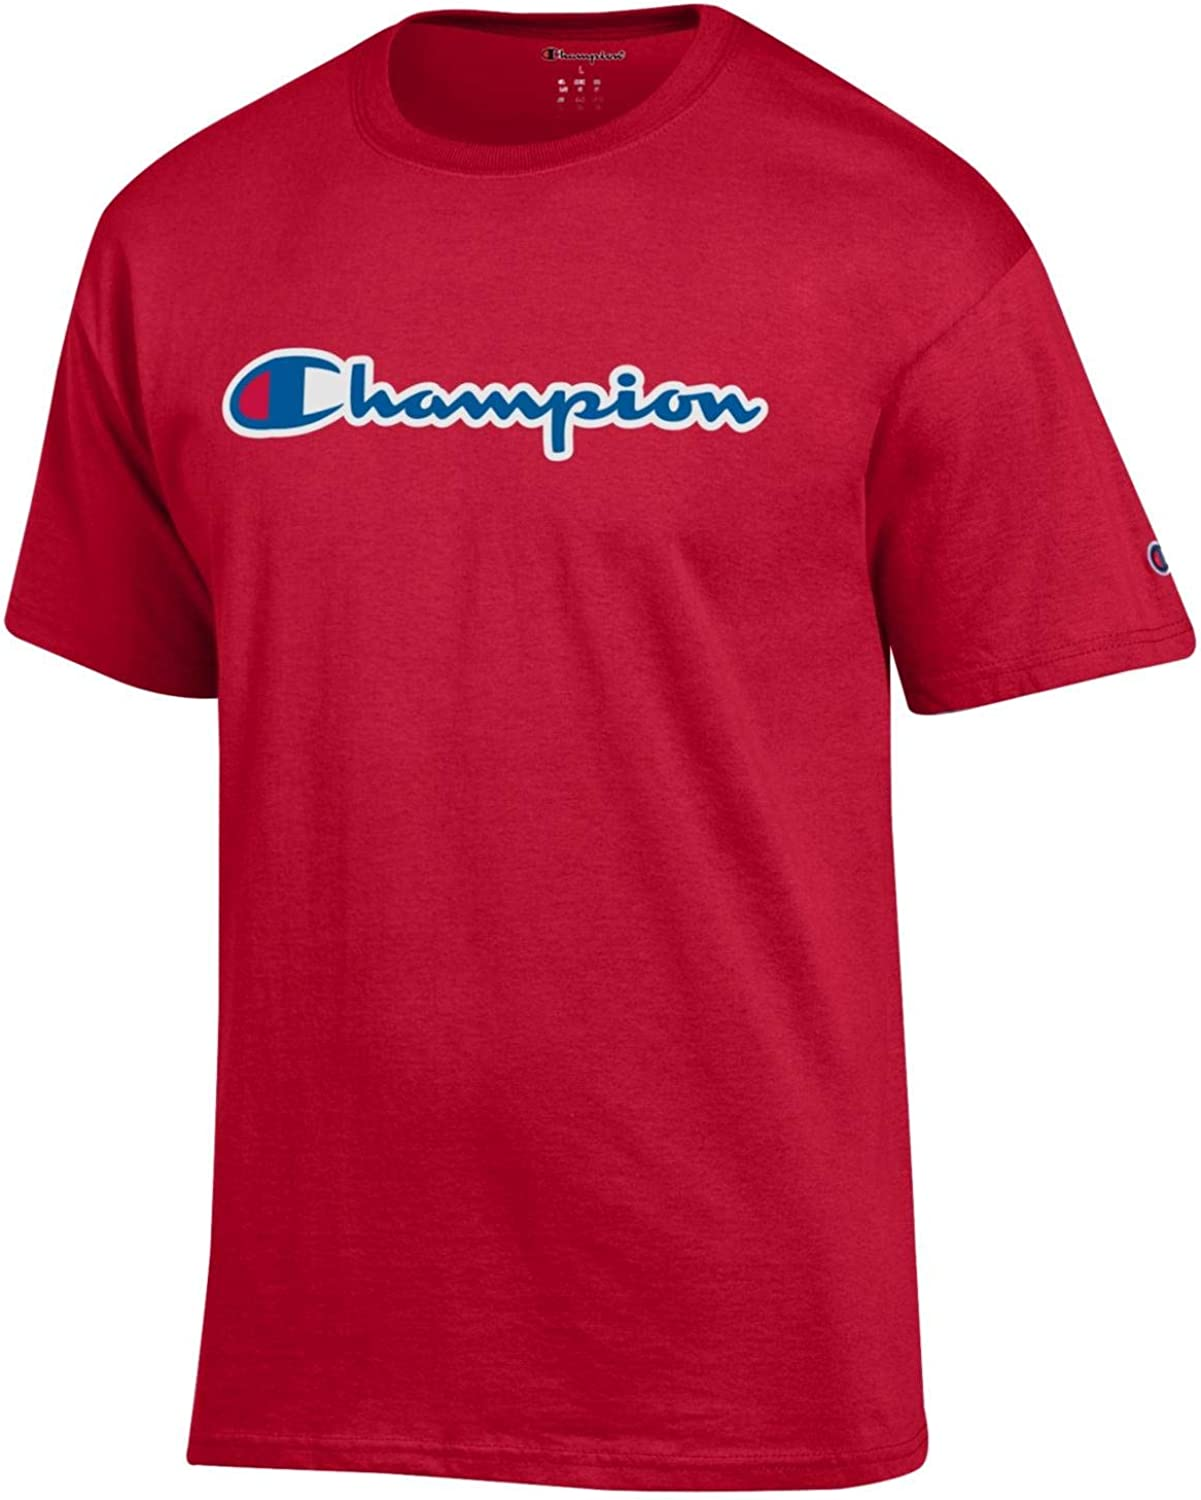 Champion Graphic Jersey Tee (GT280)